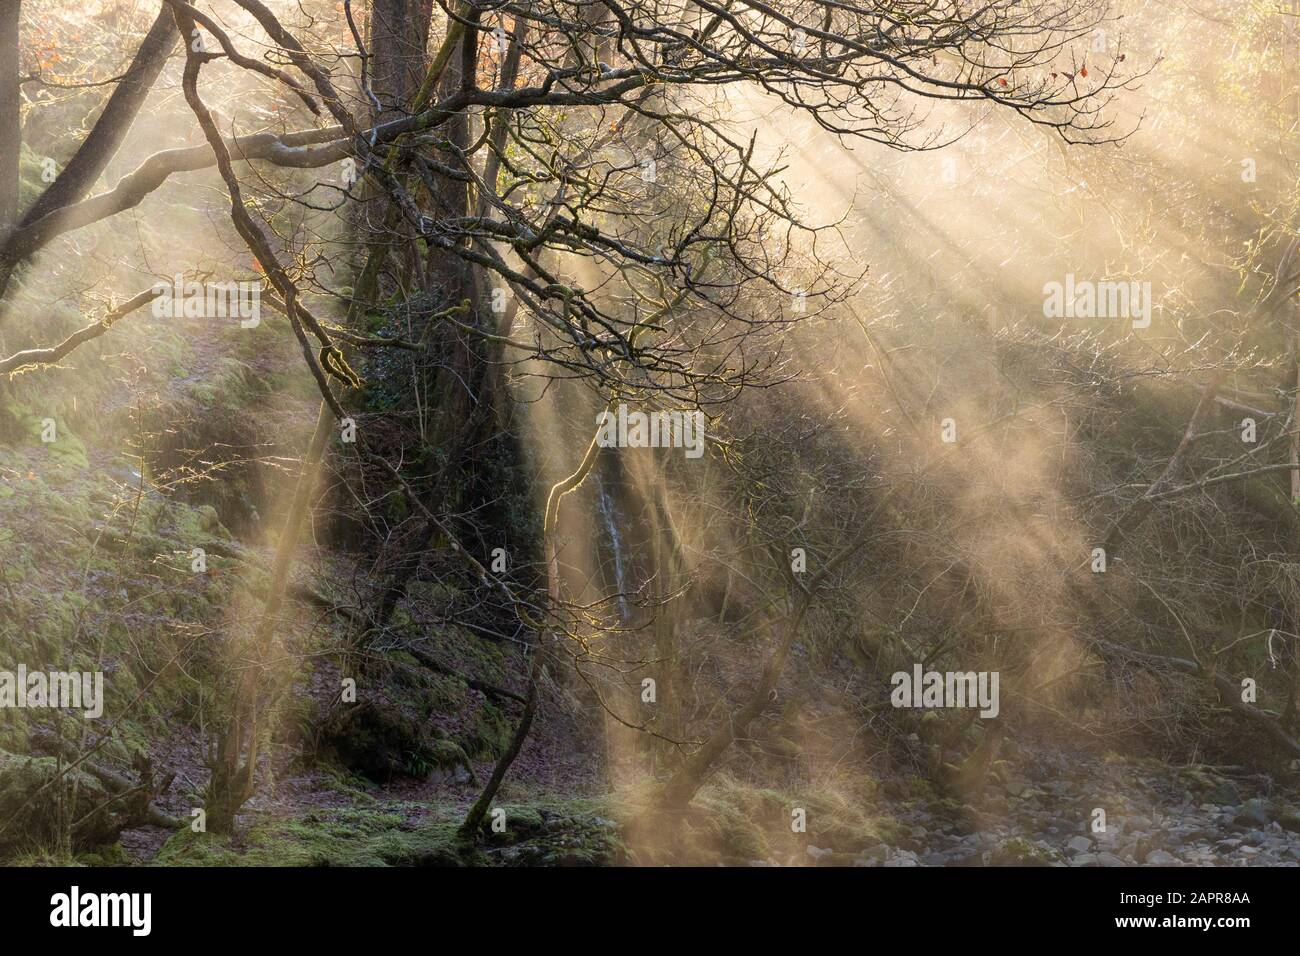 Light beams through trees,Rays of light shafts of light  Beams of sunlight through a forest in winter Brecon Beacons National park South Wales UK GB Stock Photo